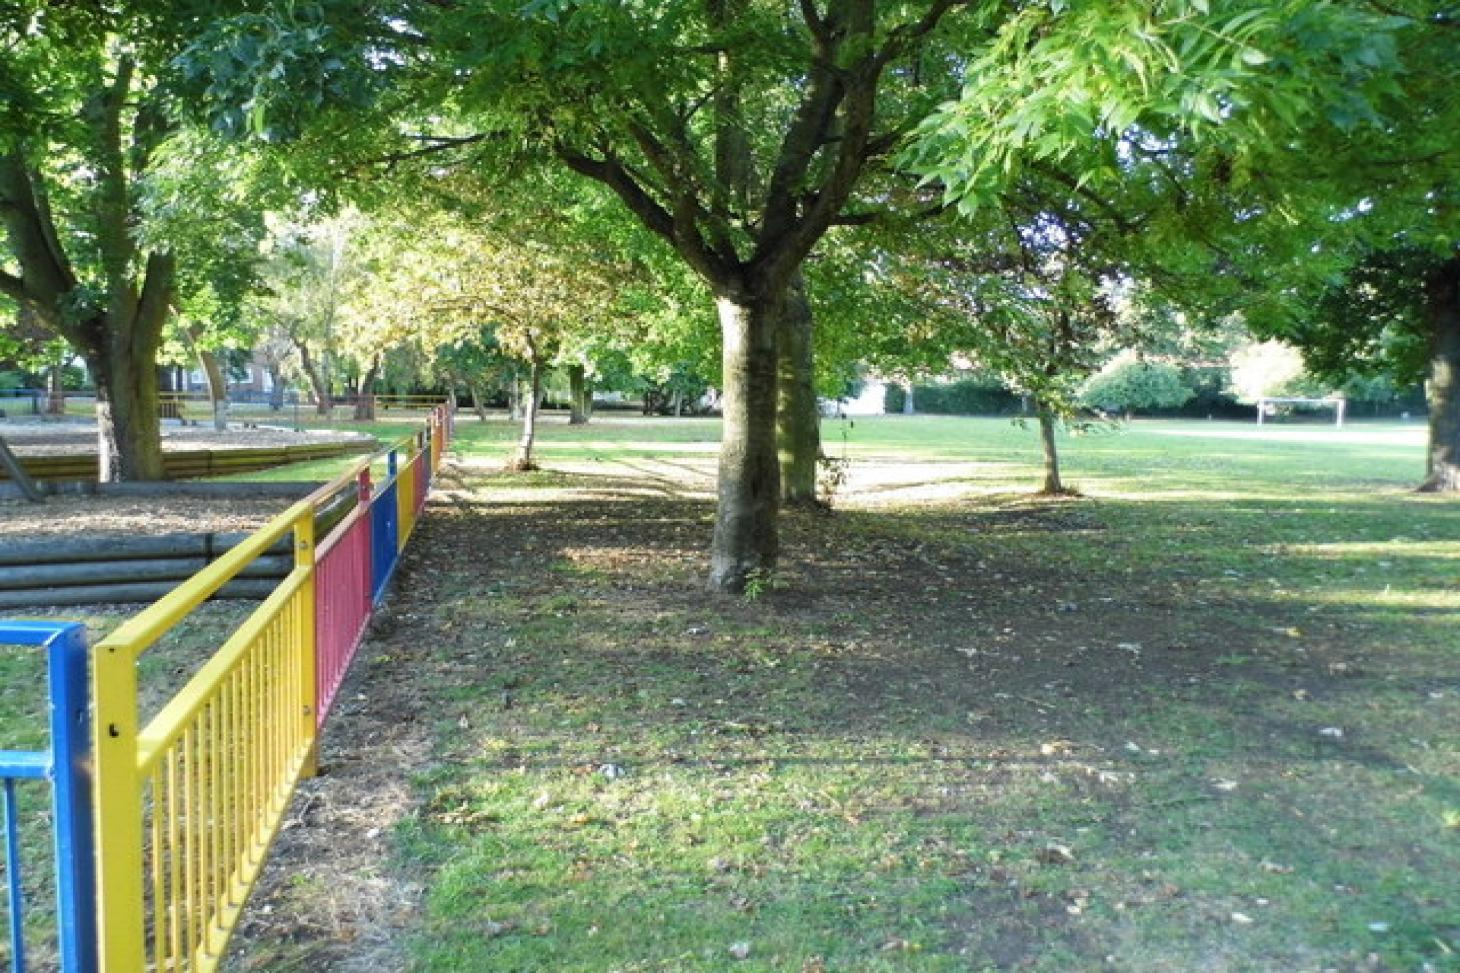 Stanmore Recreation Ground 11 a side | Grass football pitch